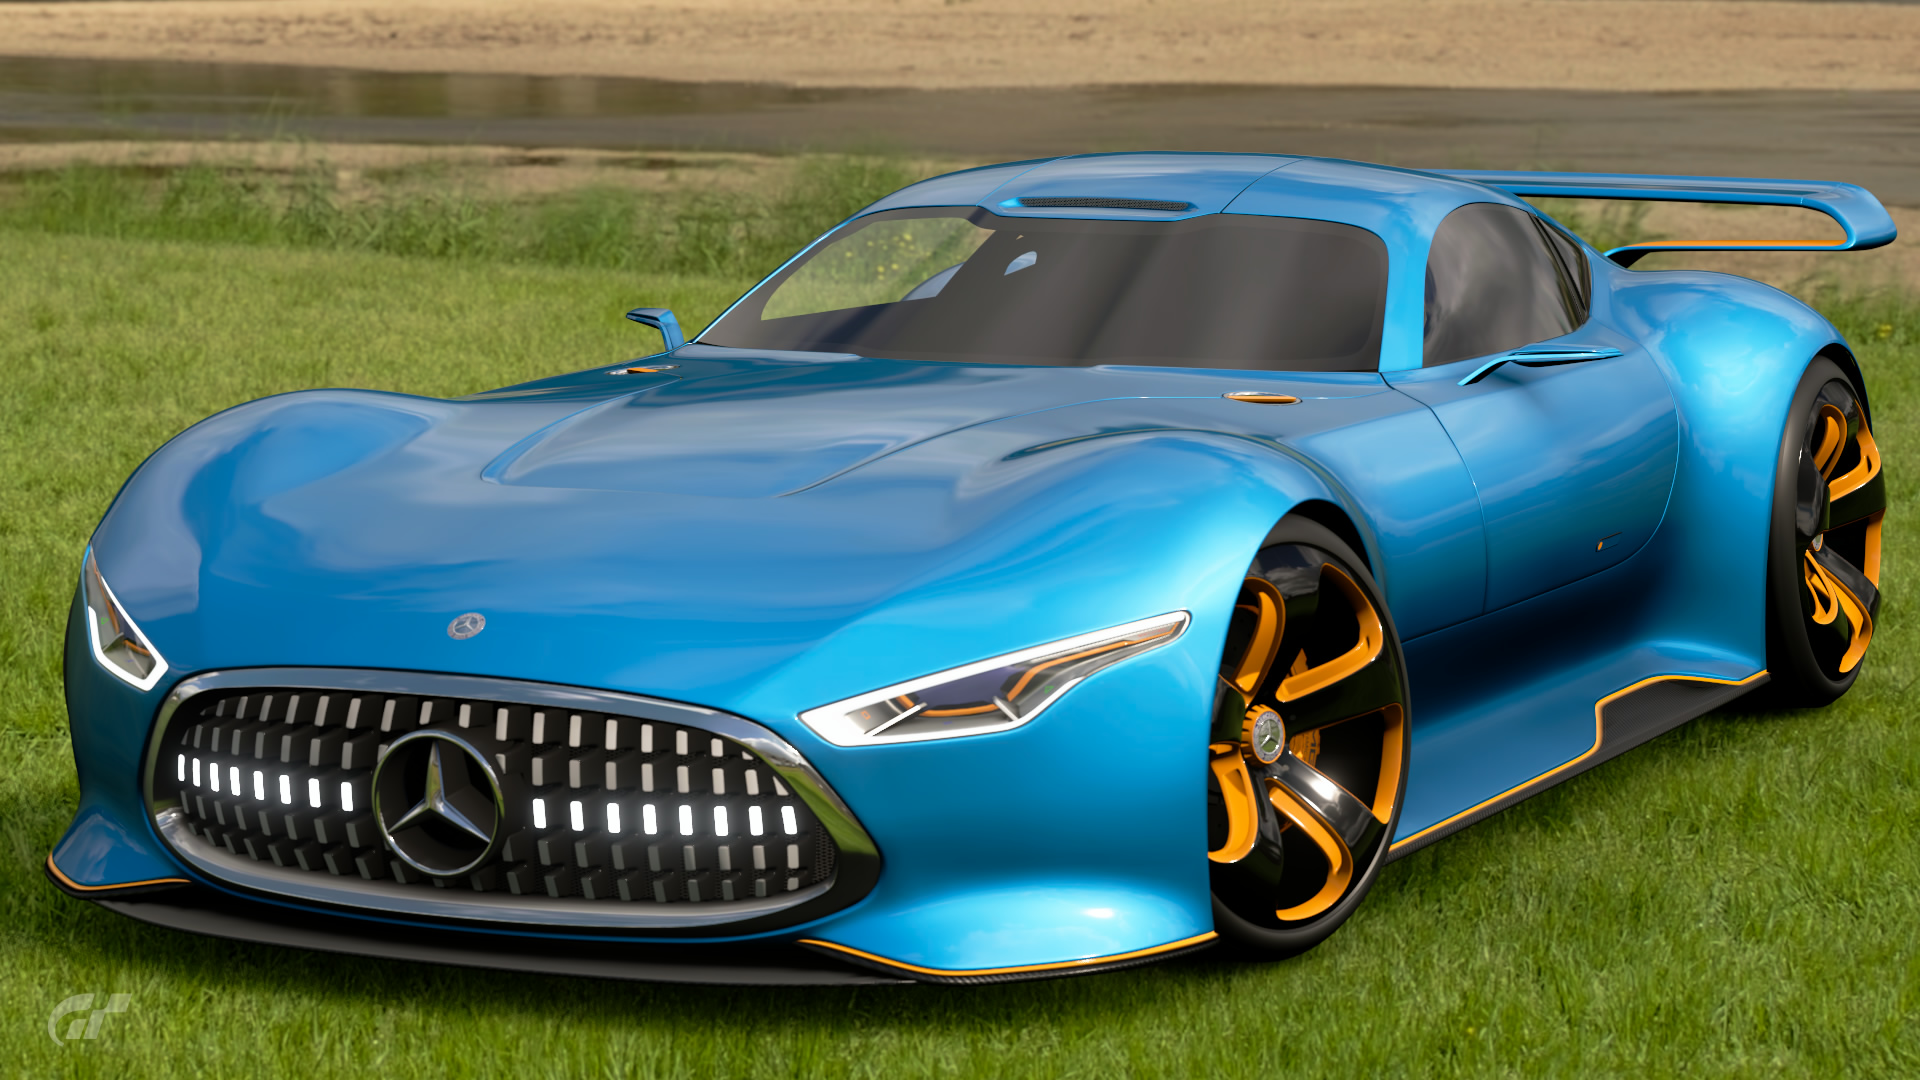 Amazing Mercedes Benz AMG Vision Gran Turismo Racing Series